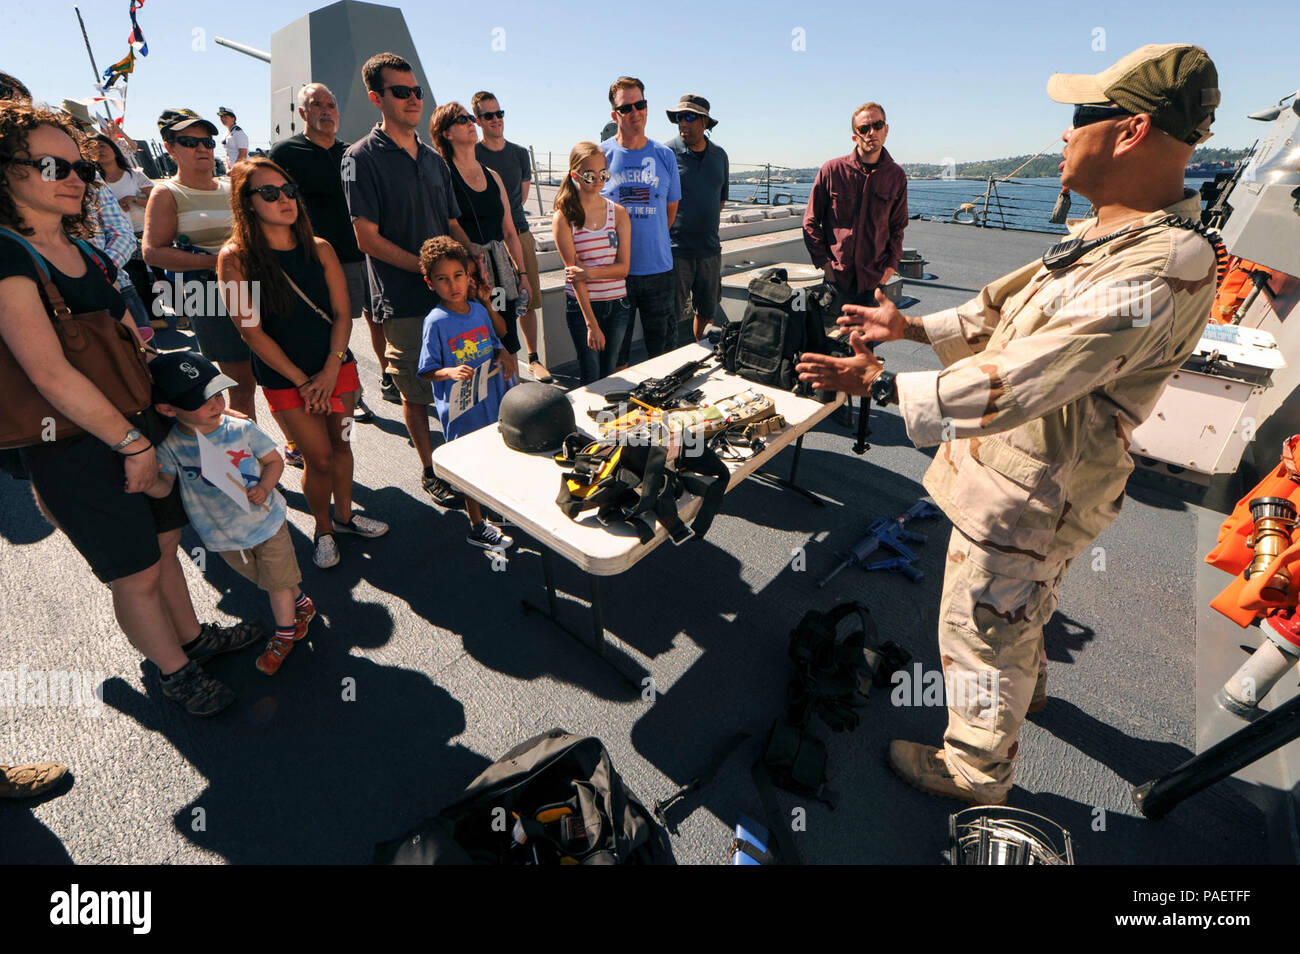 SEATTLE, Wash. (July 30, 2015) Damage Controlman 1st Class Benrichard Victorino, a Los Angeles native assigned to USS Gridley (DDG 101), presents equipment used in anti-terrorism force protection during ship tours on the Arleigh Burke-class guided missile destroyer for Seafair Fleet Week. Seafair Fleet Week is an annual celebration of the sea services wherein Sailors, Marines and Coast Guardsmen from visiting U.S. Navy and Coast Guard ships and ships from Canada make the city a port of call. Stock Photo